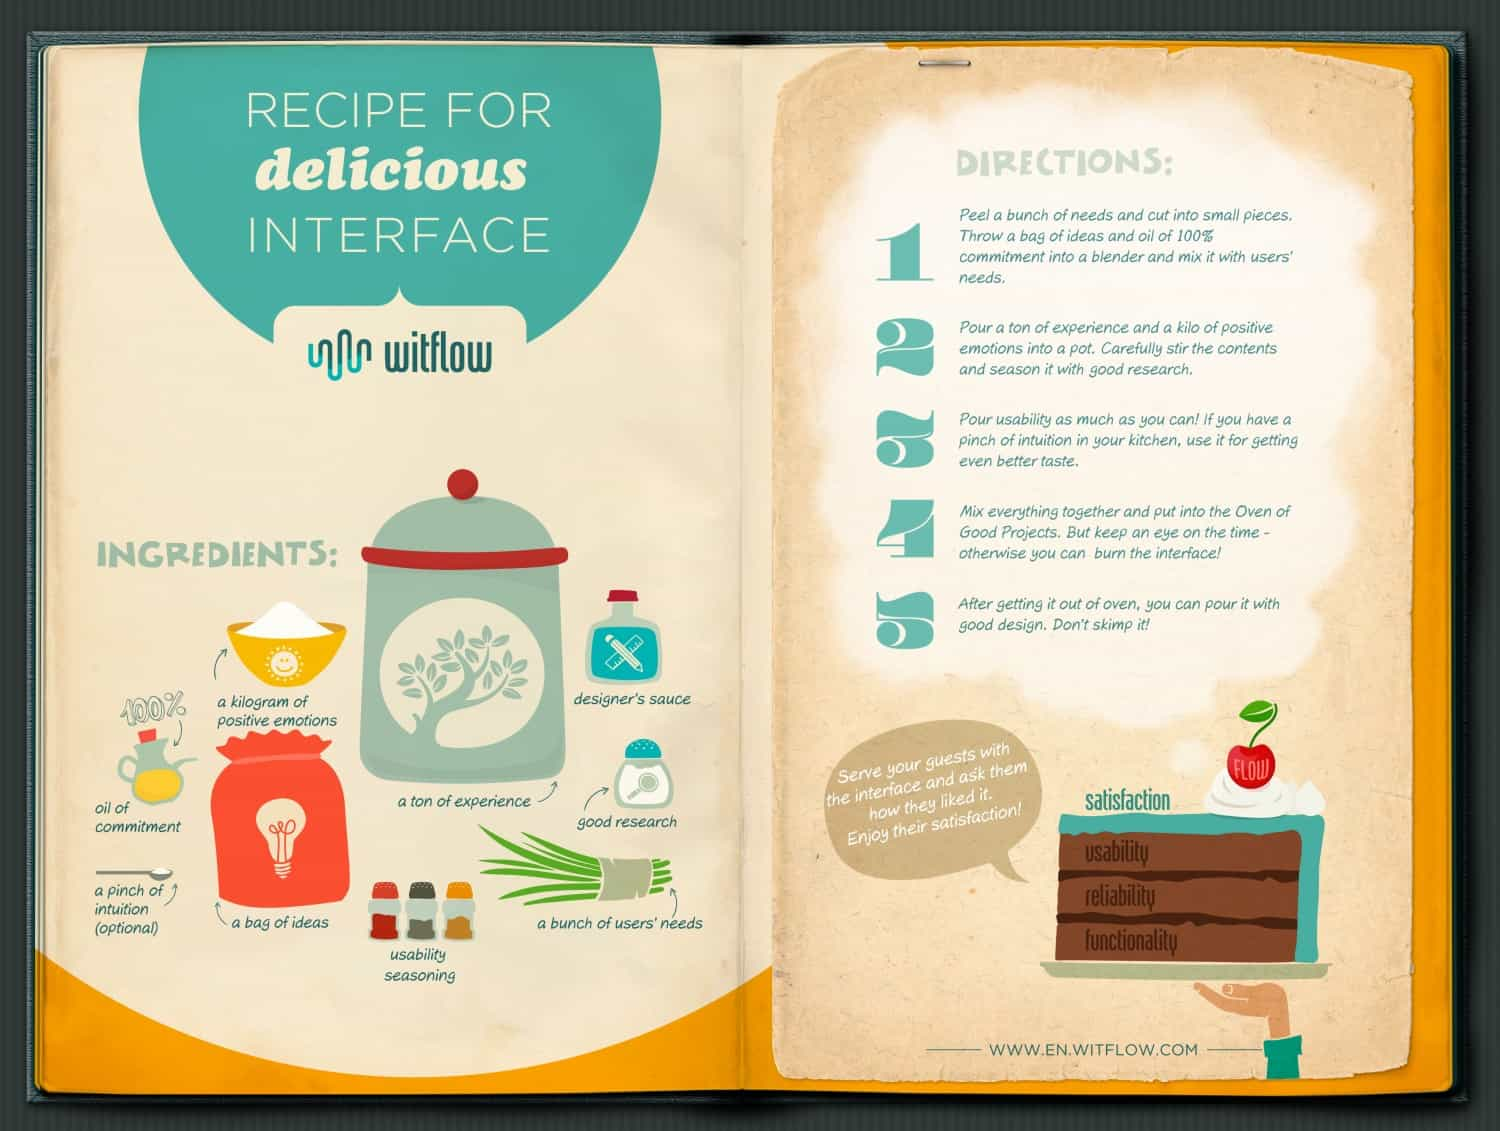 recipe-for-delicious-interface